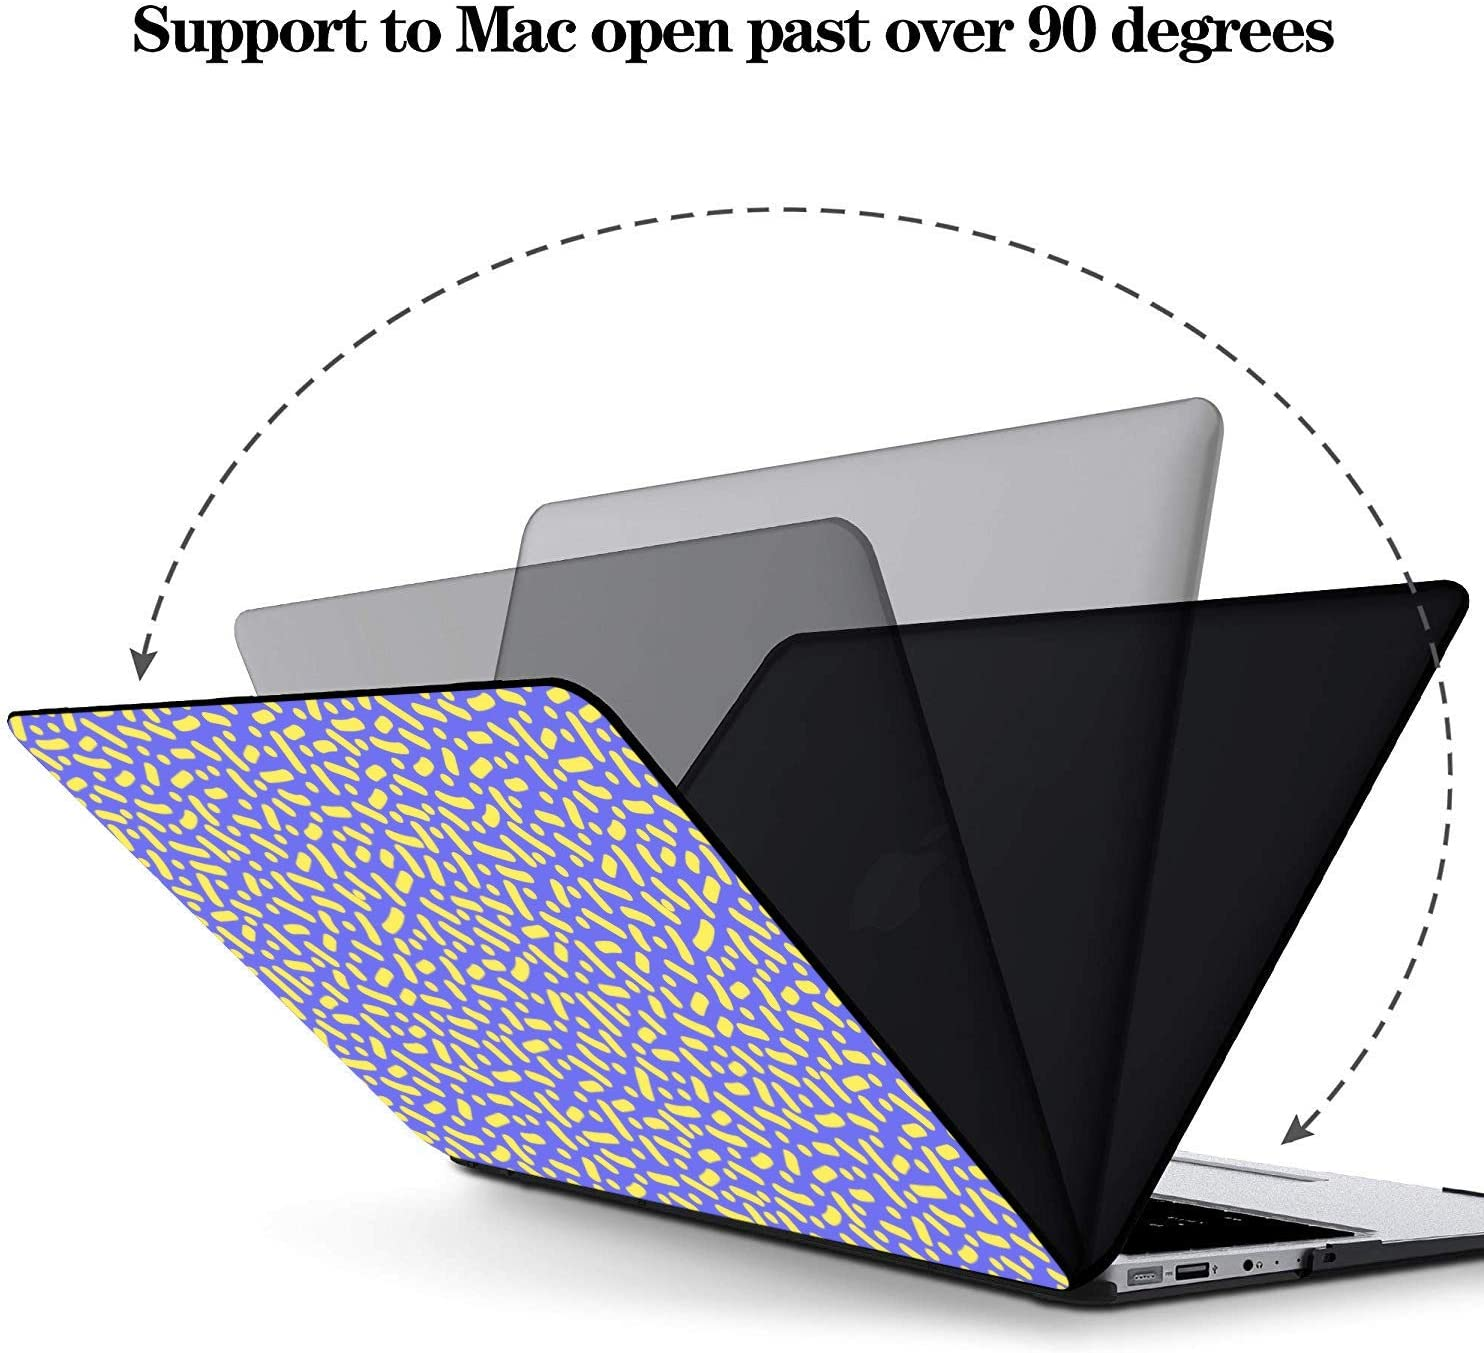 Laptop Case MacBook Pro Summer Cute Retro Puple Yellow Line Plastic Hard Shell Compatible Mac Air 11 Pro 13 15 Mackbook Pro Case Protection for MacBook 2016-2019 Version